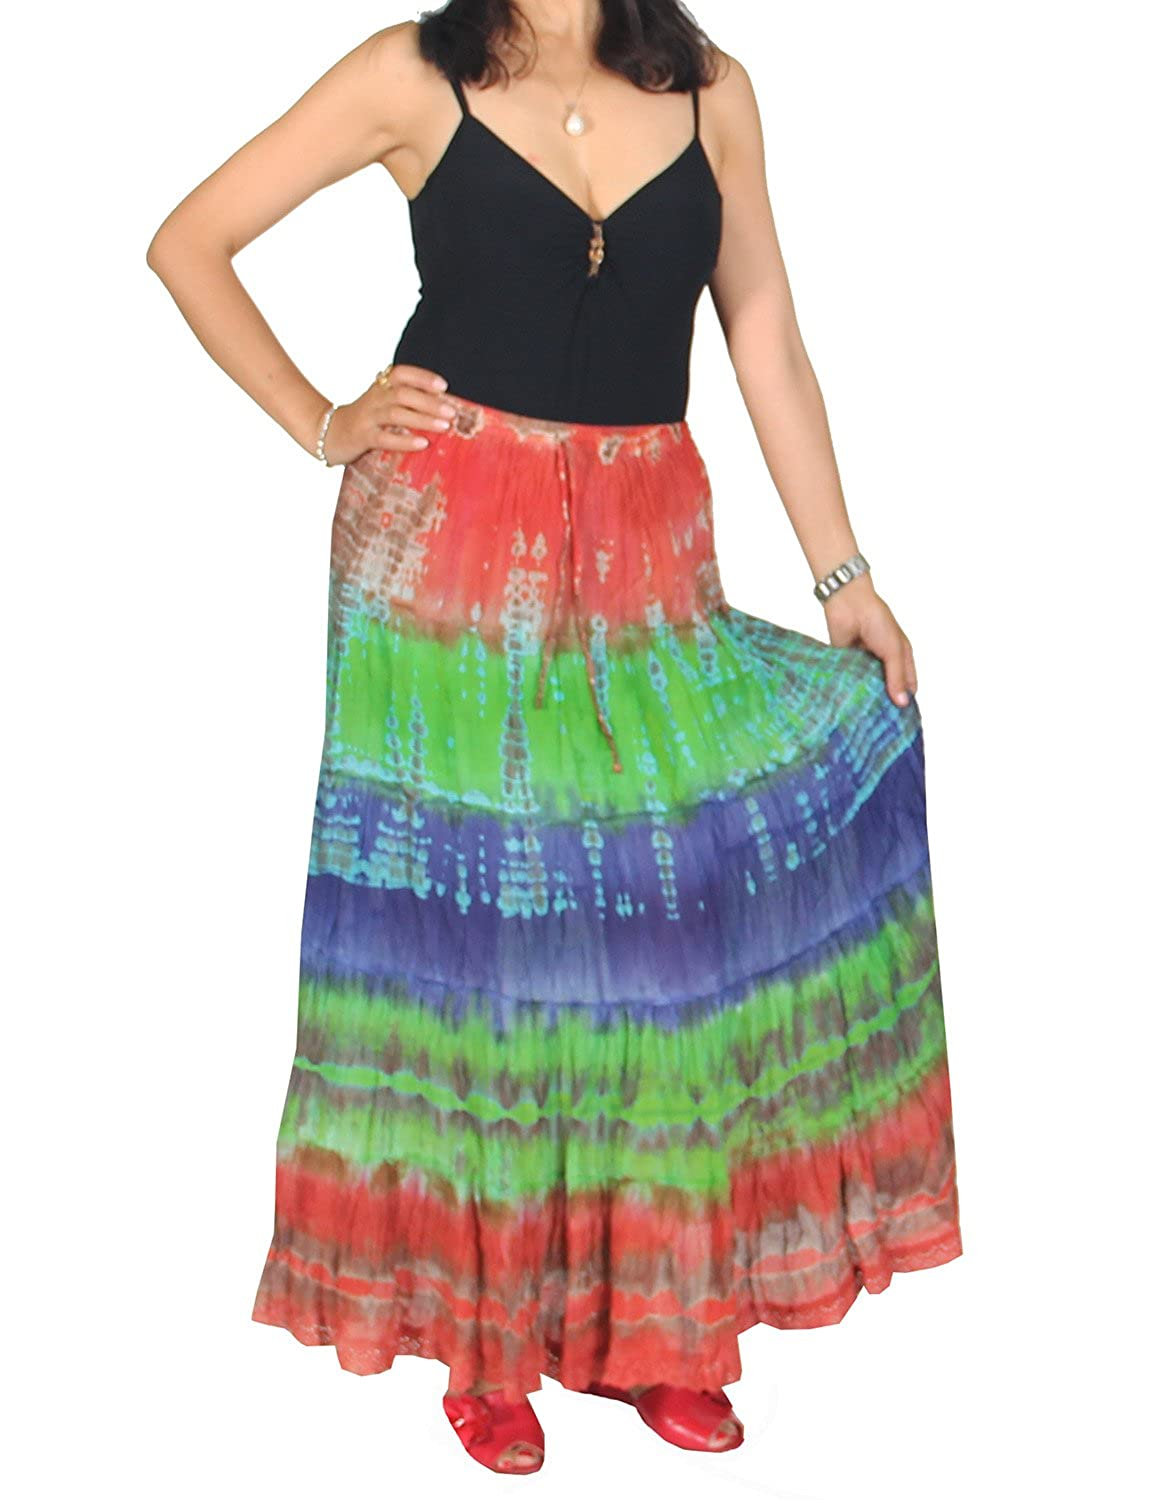 60s Skirts | 70s Hippie Skirts, Jumper Dresses KayJayStyles Womens Hippie Boho Gypsy Tie-dye Long Skirt $18.98 AT vintagedancer.com